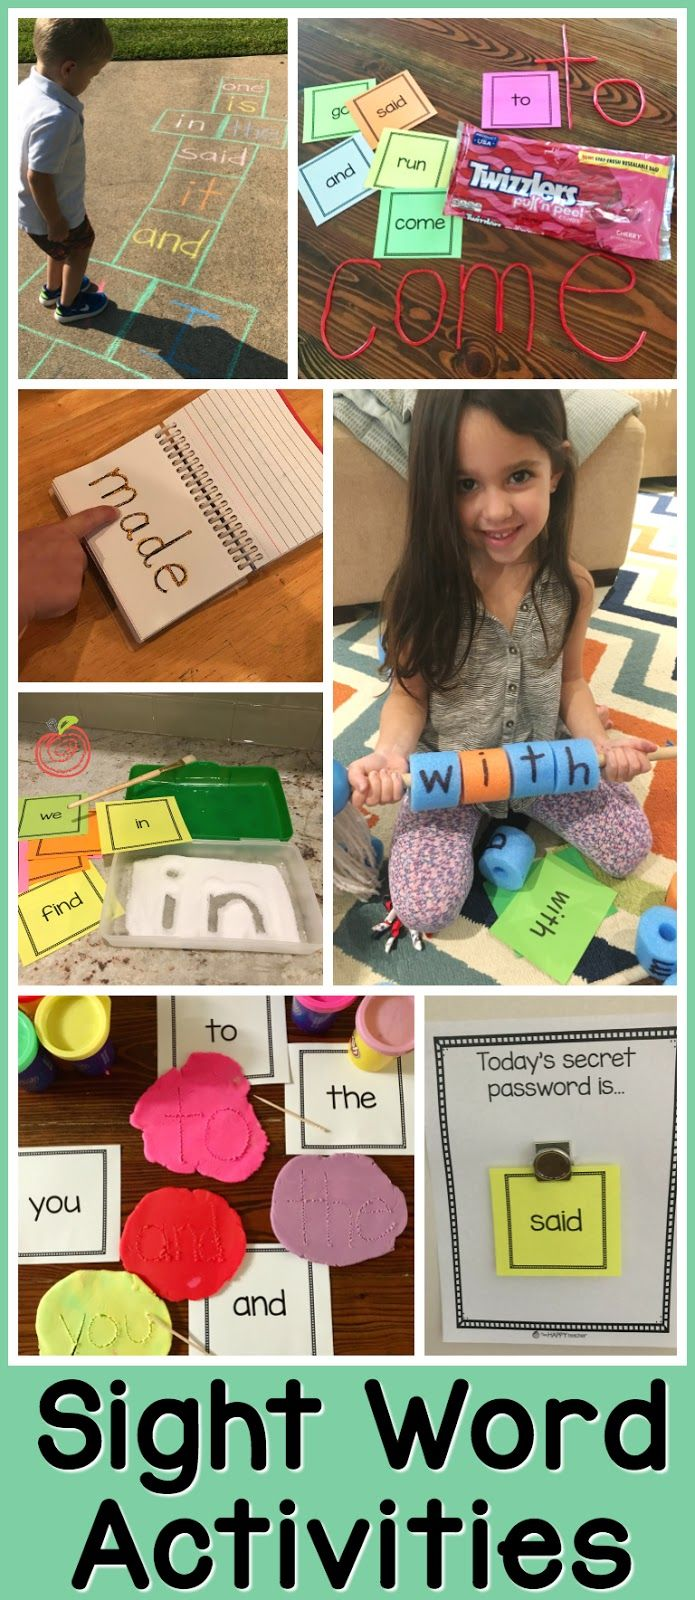 Sight Word Activities & Games for Parents to use at home with their PreK, Kindergarten, First Grade, or 2nd Grade student. These are hands on, fun, and engaging ideas that also happen to be easy to set up. If you are a parent and you aren't sure how to review sight words with your child, check out this awesome blog post for tons of ideas!